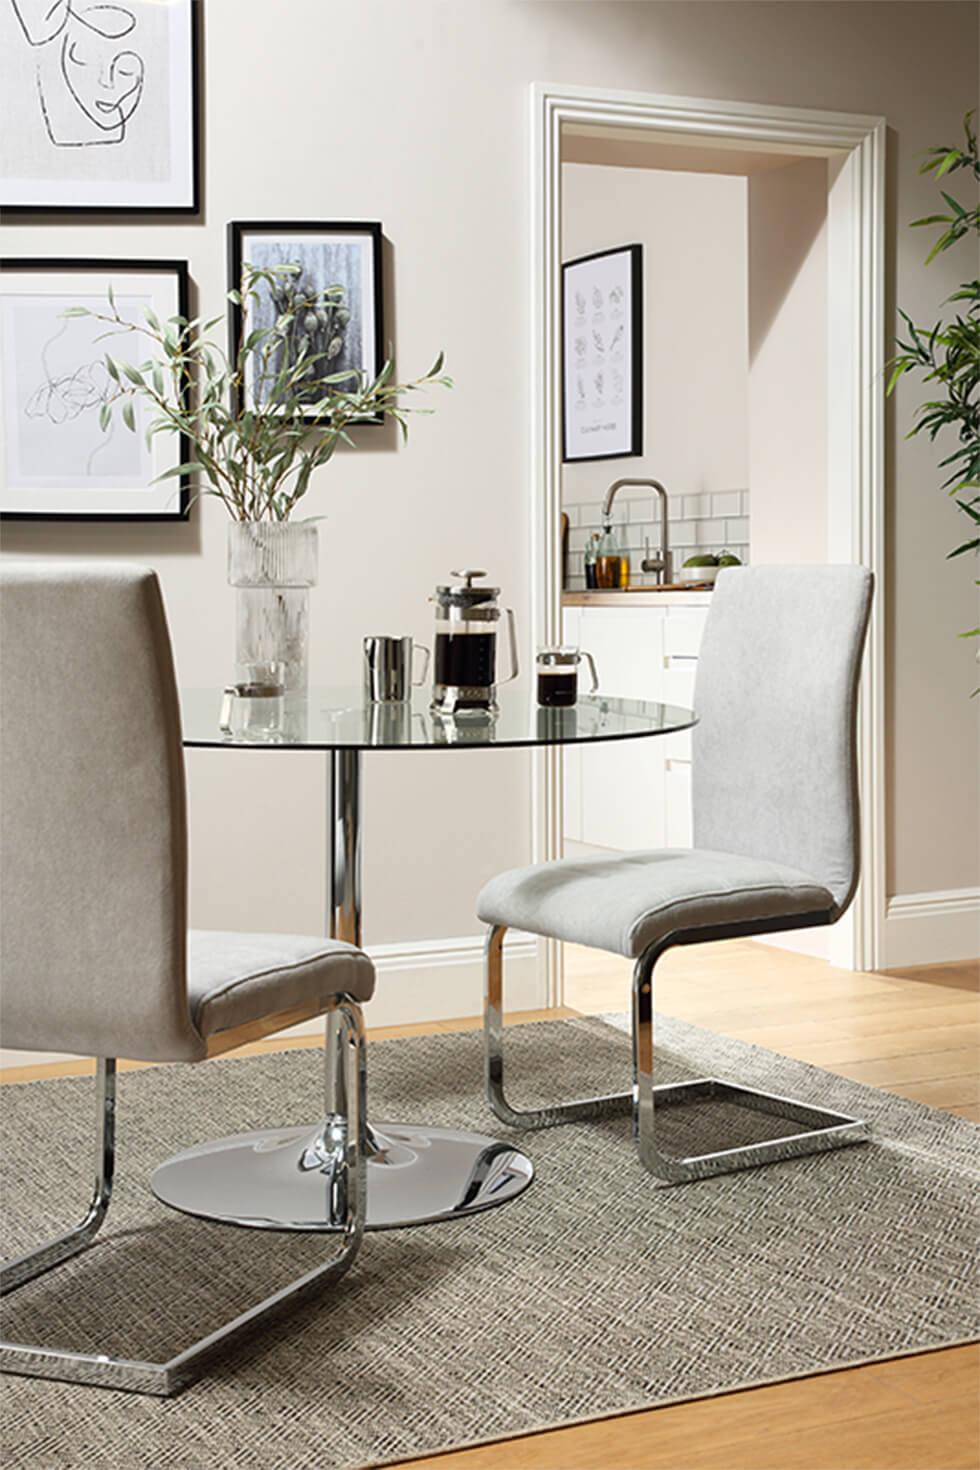 6 Of Our Best Ideas For Styling Small Dining Rooms Inspiration Furniture And Choice